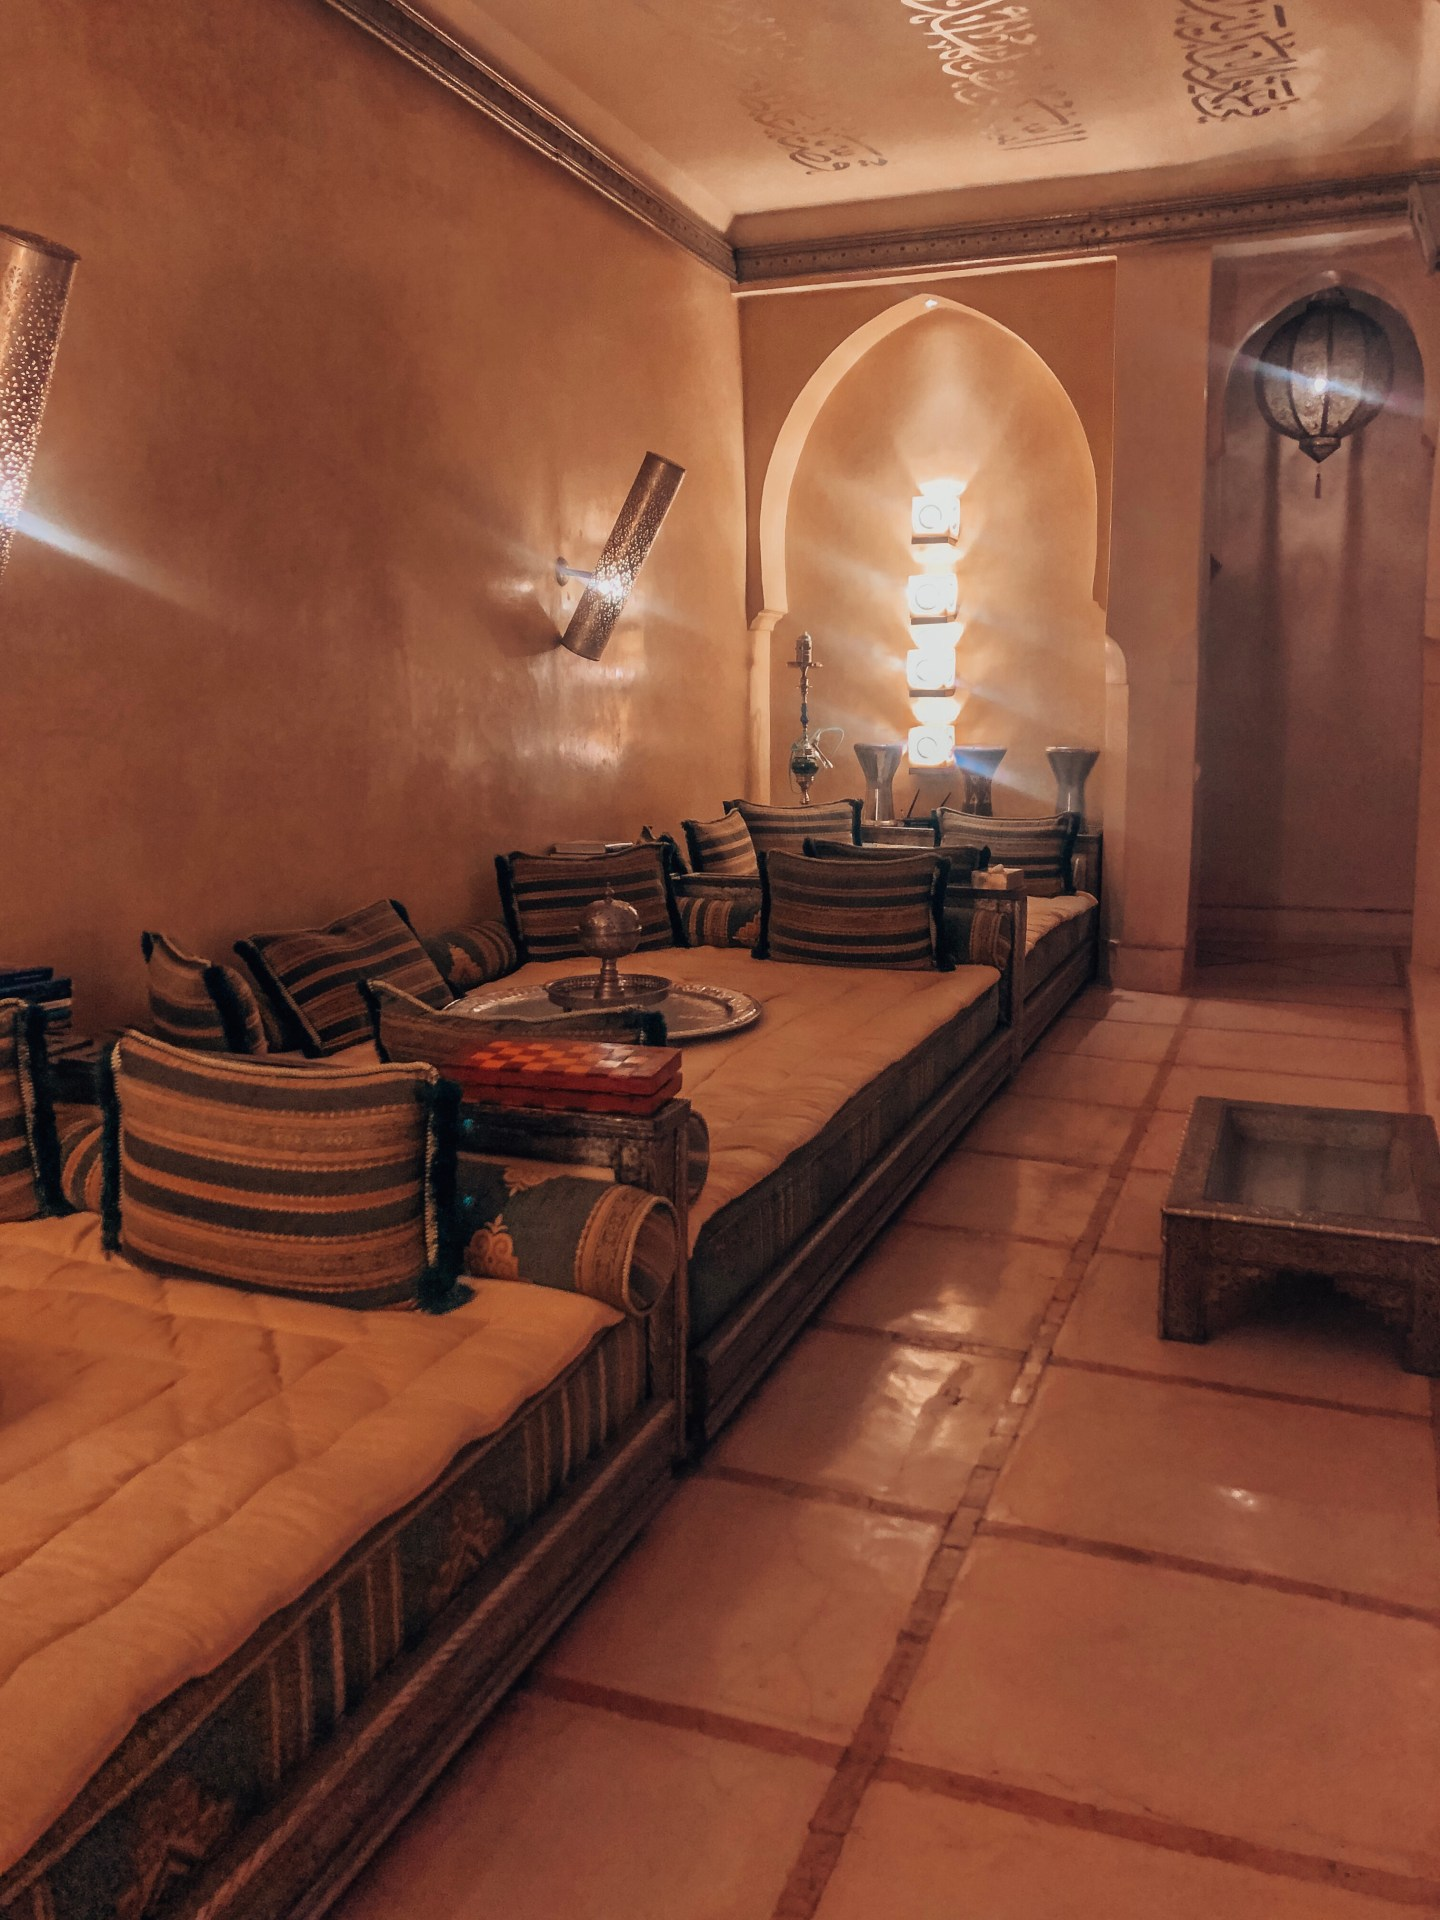 Sitting area to smoke Shisha—Marrakech, Morocco